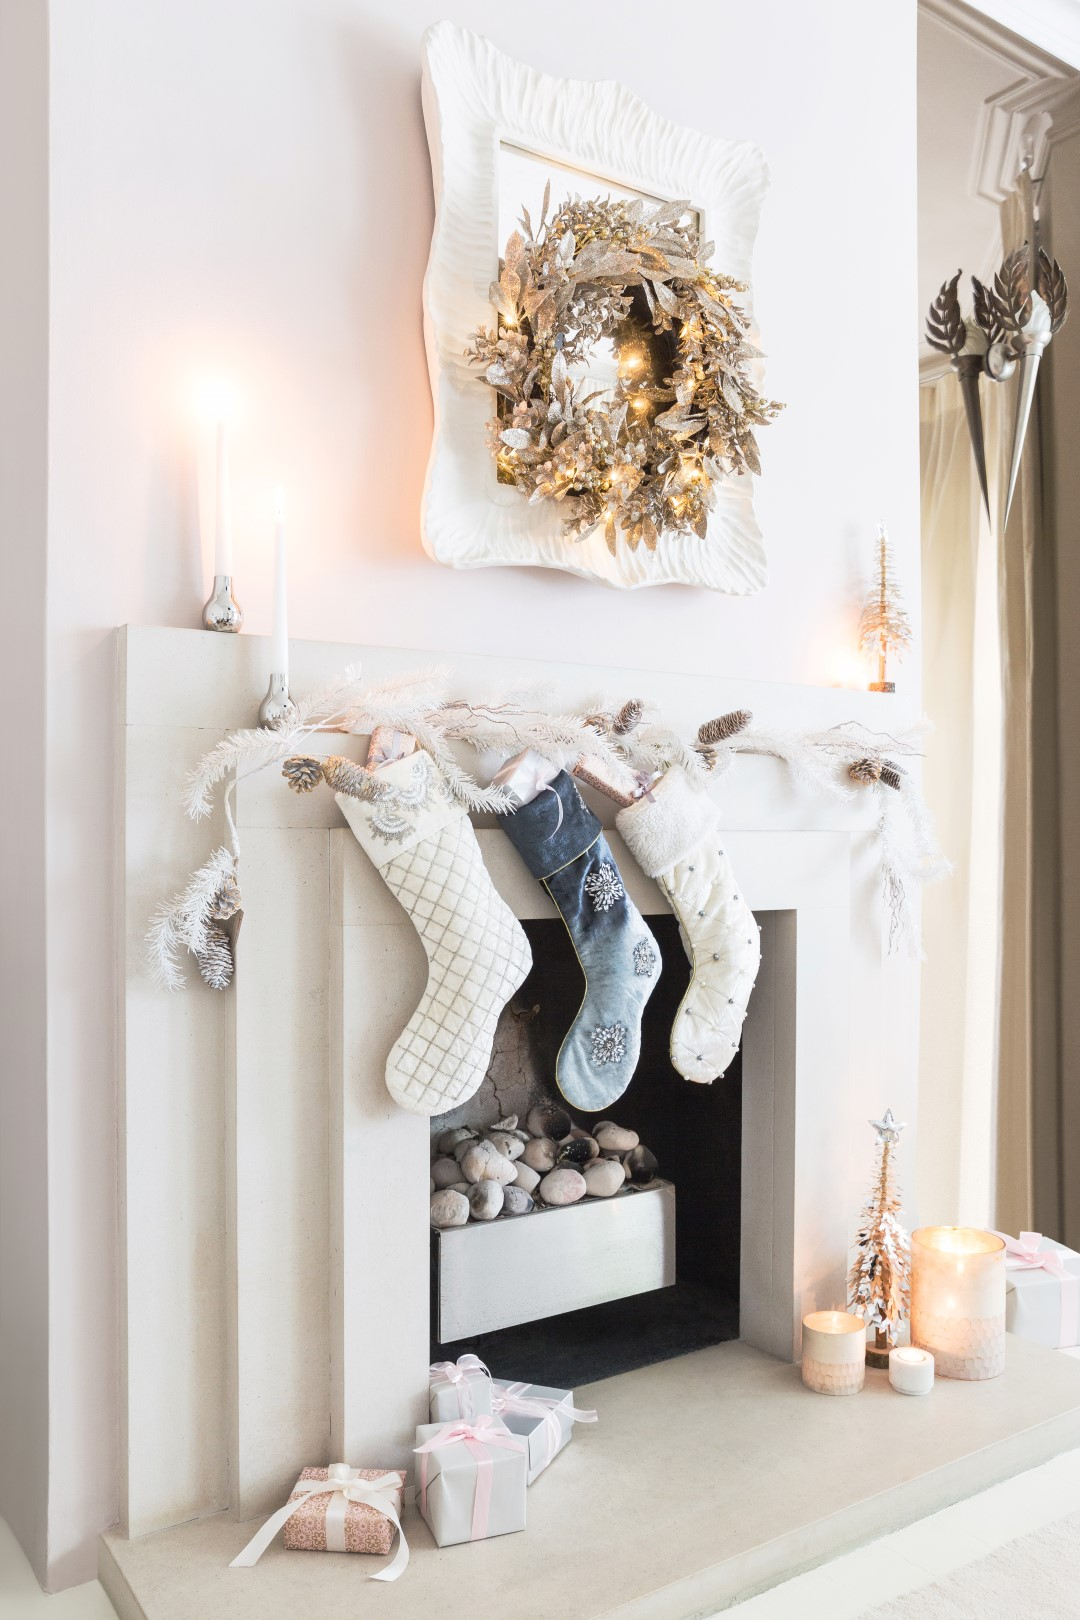 How To Decorate Your First Home For Christmas Home Decorators Catalog Best Ideas of Home Decor and Design [homedecoratorscatalog.us]